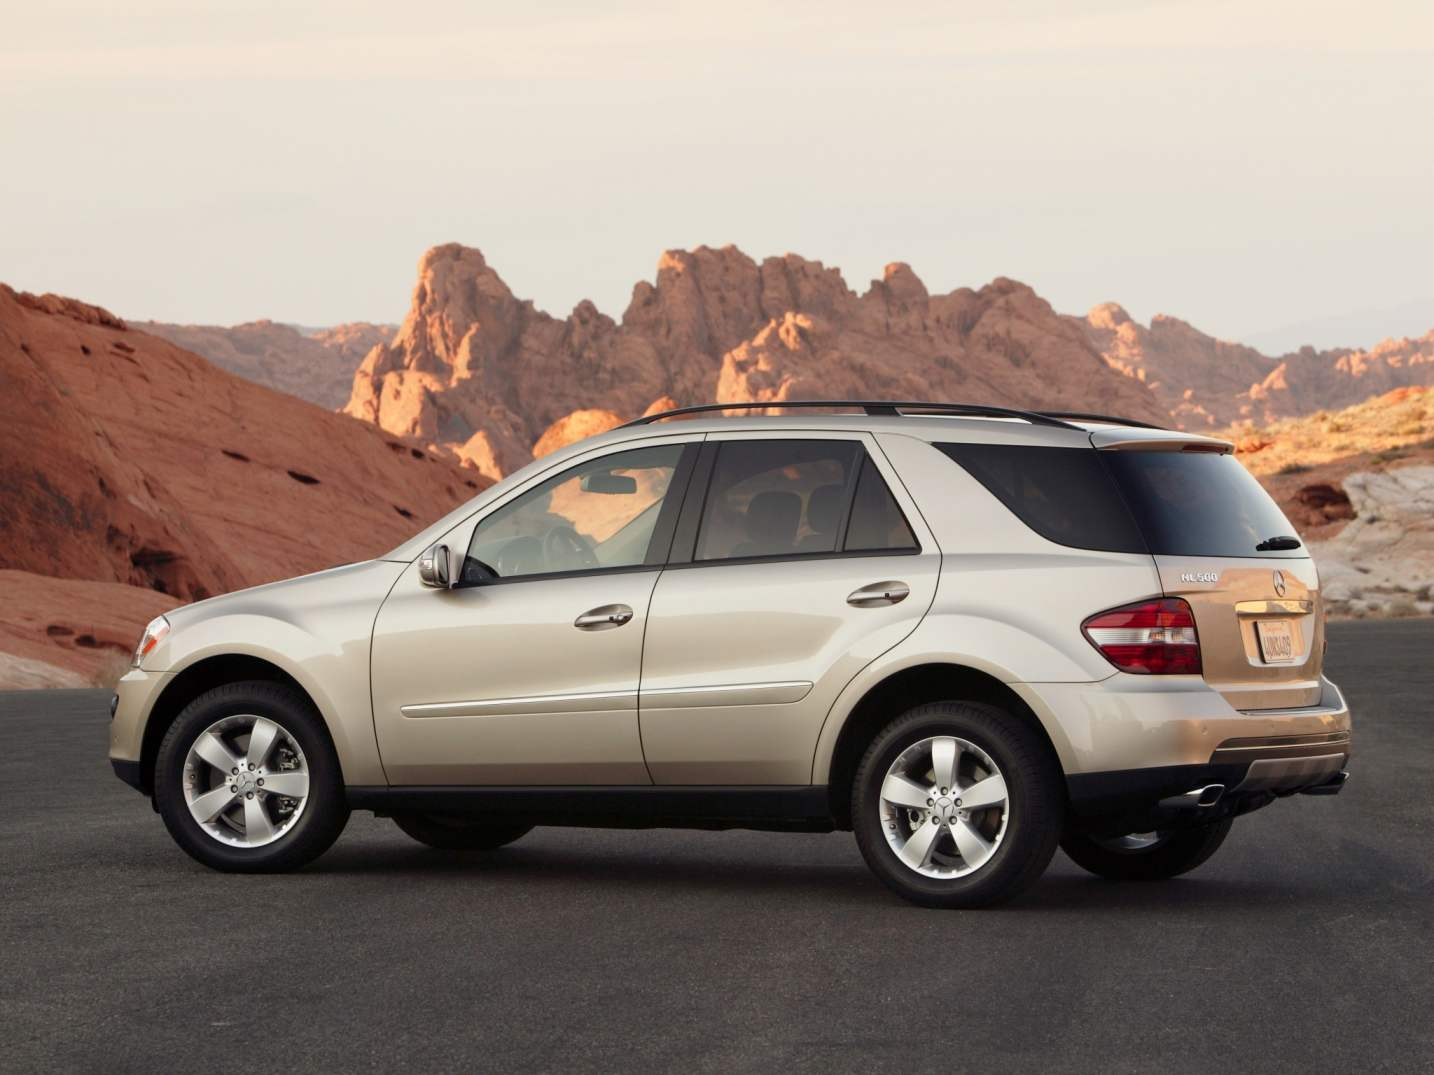 MERCEDES-BENZ ML500 is a five — door station wagon 8-cylinder V-shaped petrol engine capacity of 306 HP edition 2005